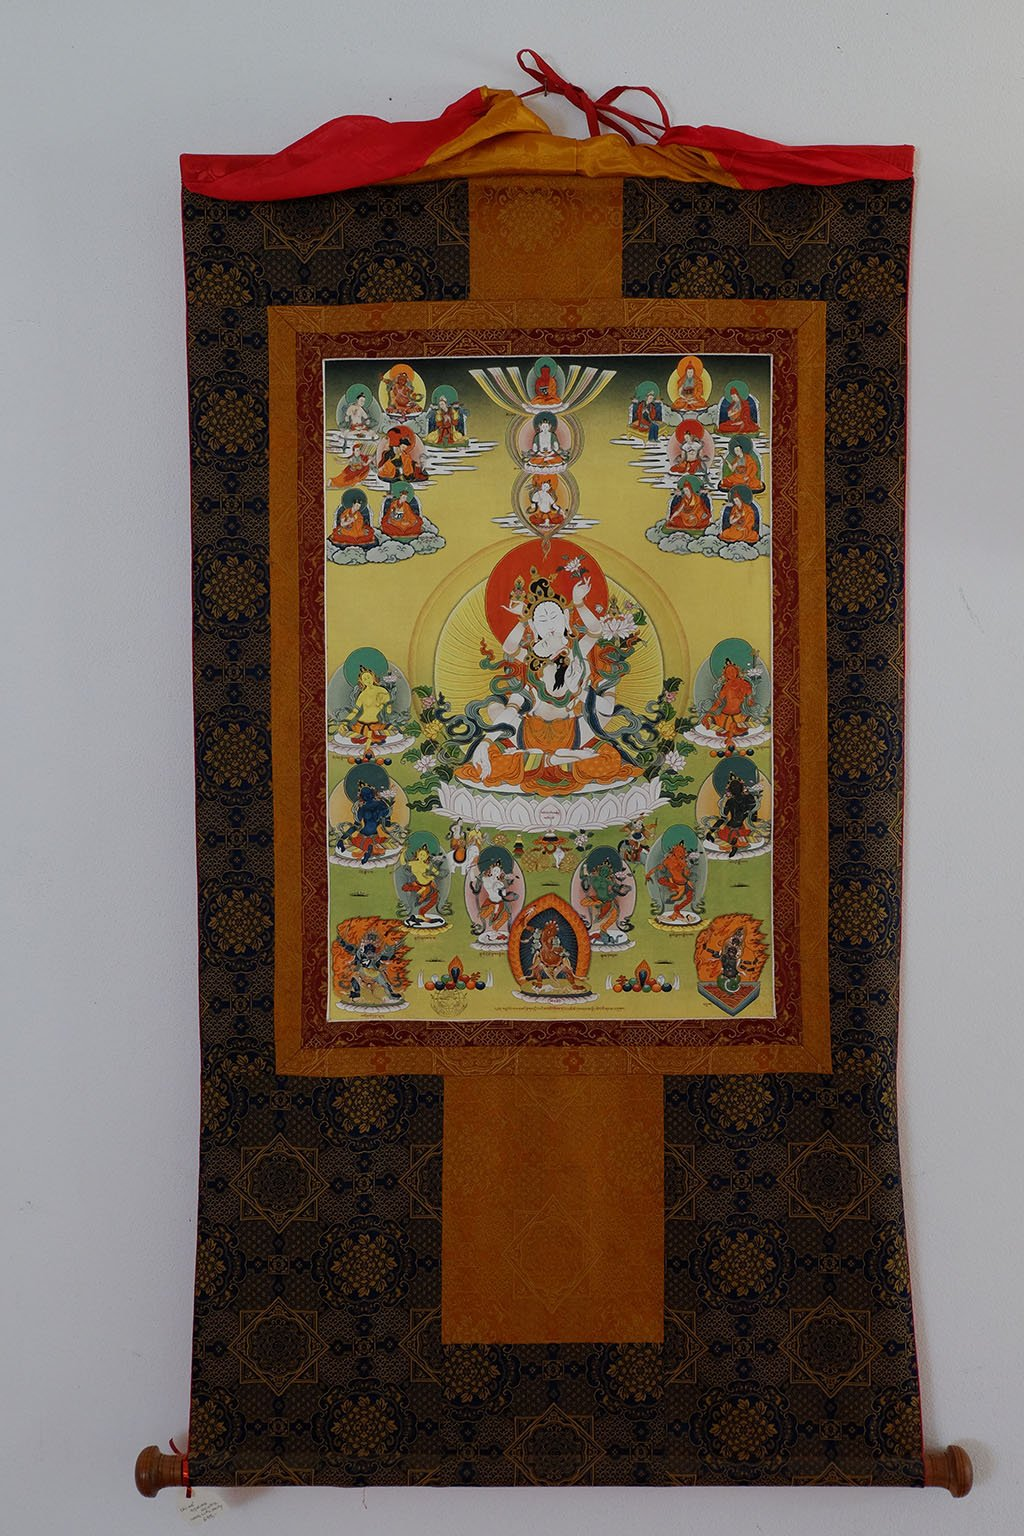 Chimé Gyalwa Nyintik - Long Life Deity (White Tara Elaborated) Thangka